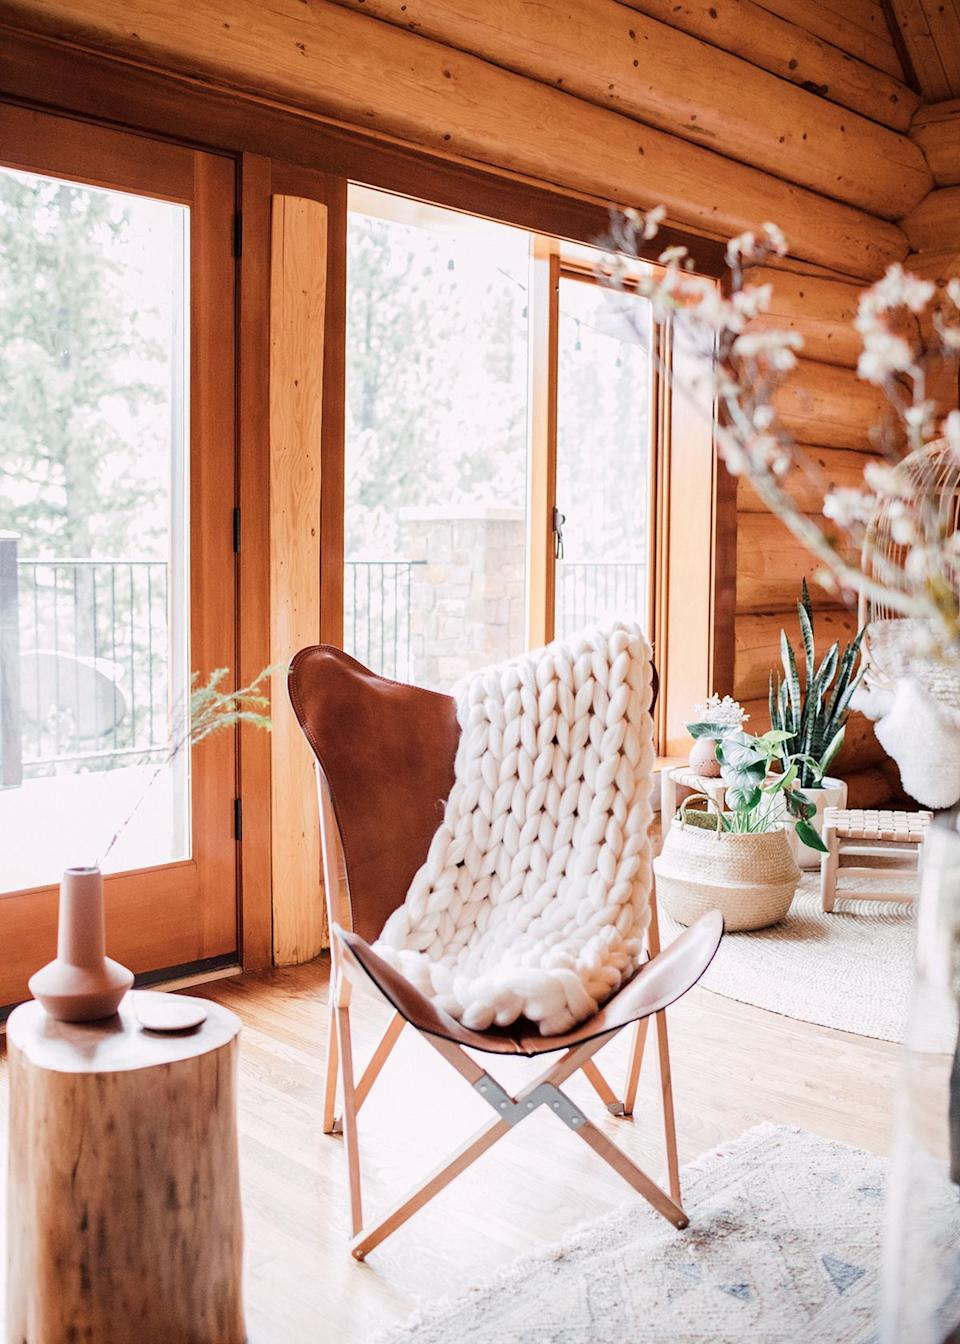 """The four-bedroom family home rests on a plot of seven acres of gorgeous mountain land, Kula tells MyDomaine. """"It's a true log cabin, with logs for just about all the interior walls, and an incredible basement that has been converted into a fully functioning wet bar and wine cave,"""" she explains."""